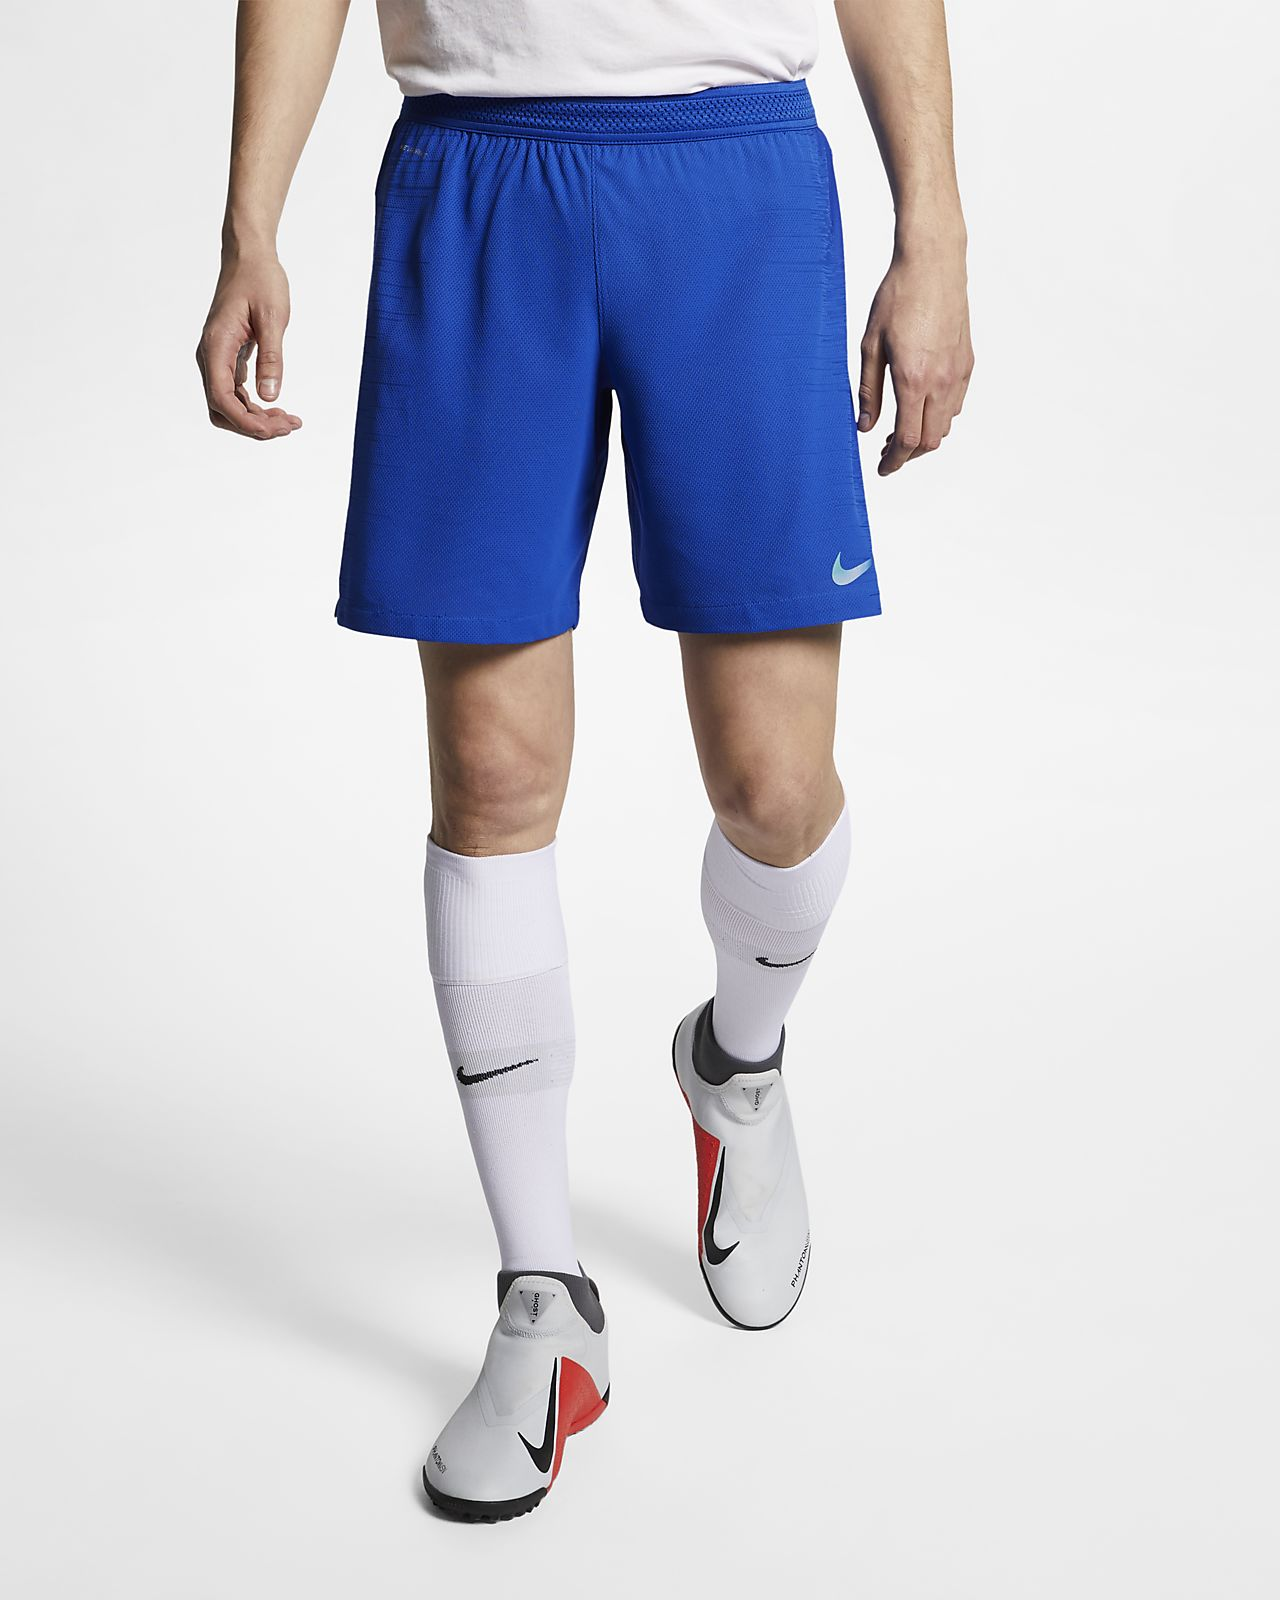 784f56588730 Nike VaporKnit Strike Men s Football Shorts. Nike.com ZA